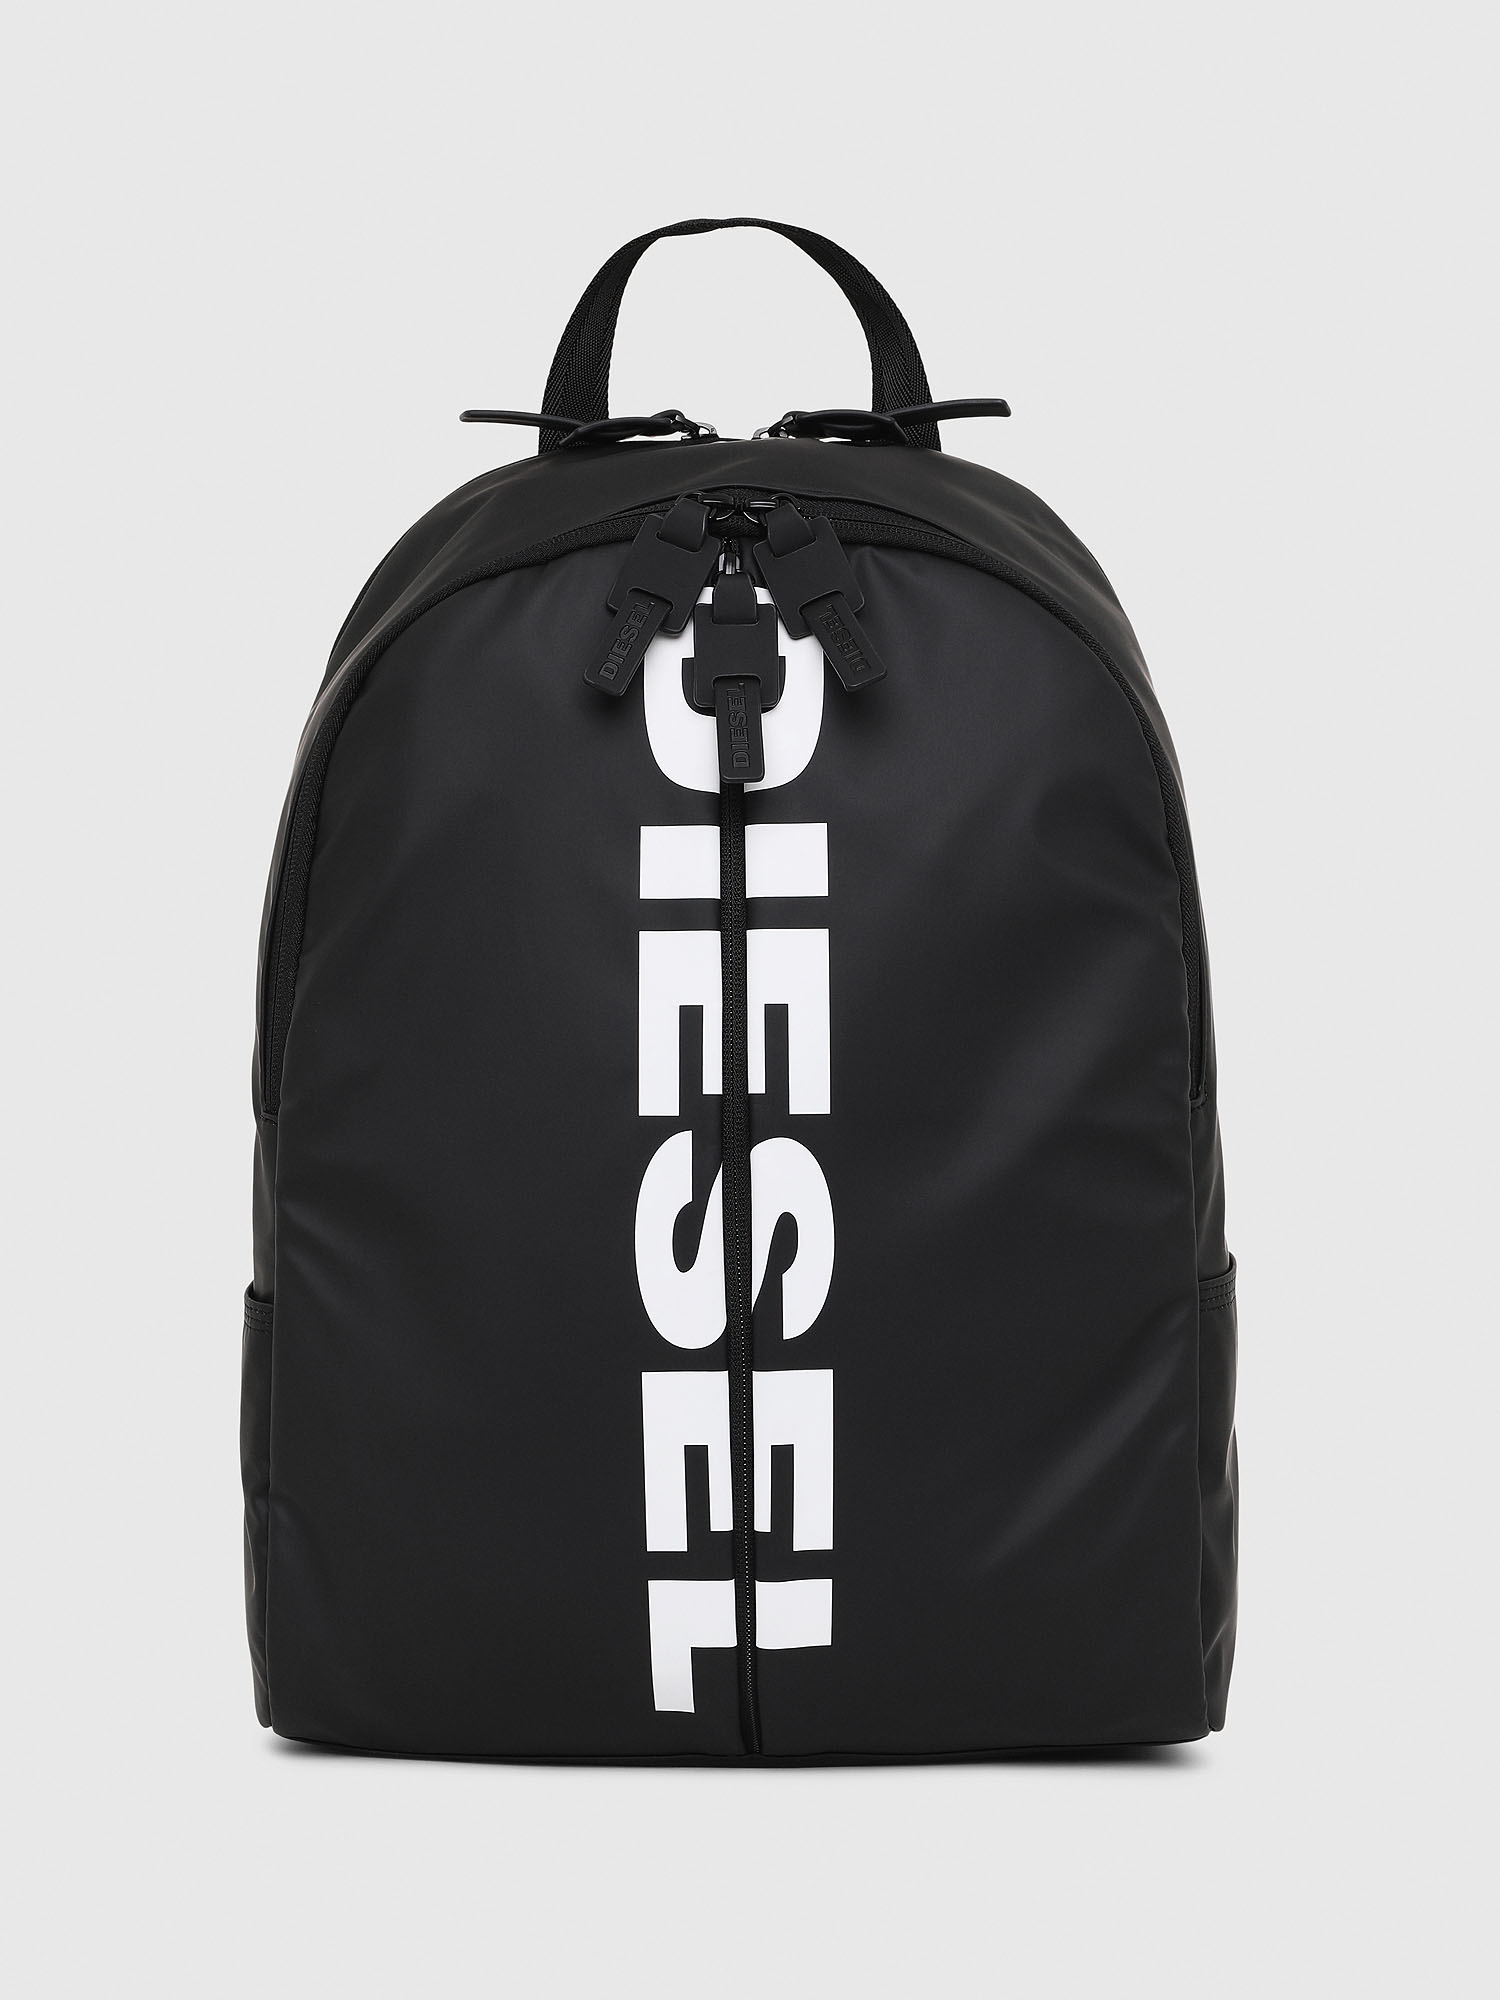 Diesel Backpacks P1705 - Black